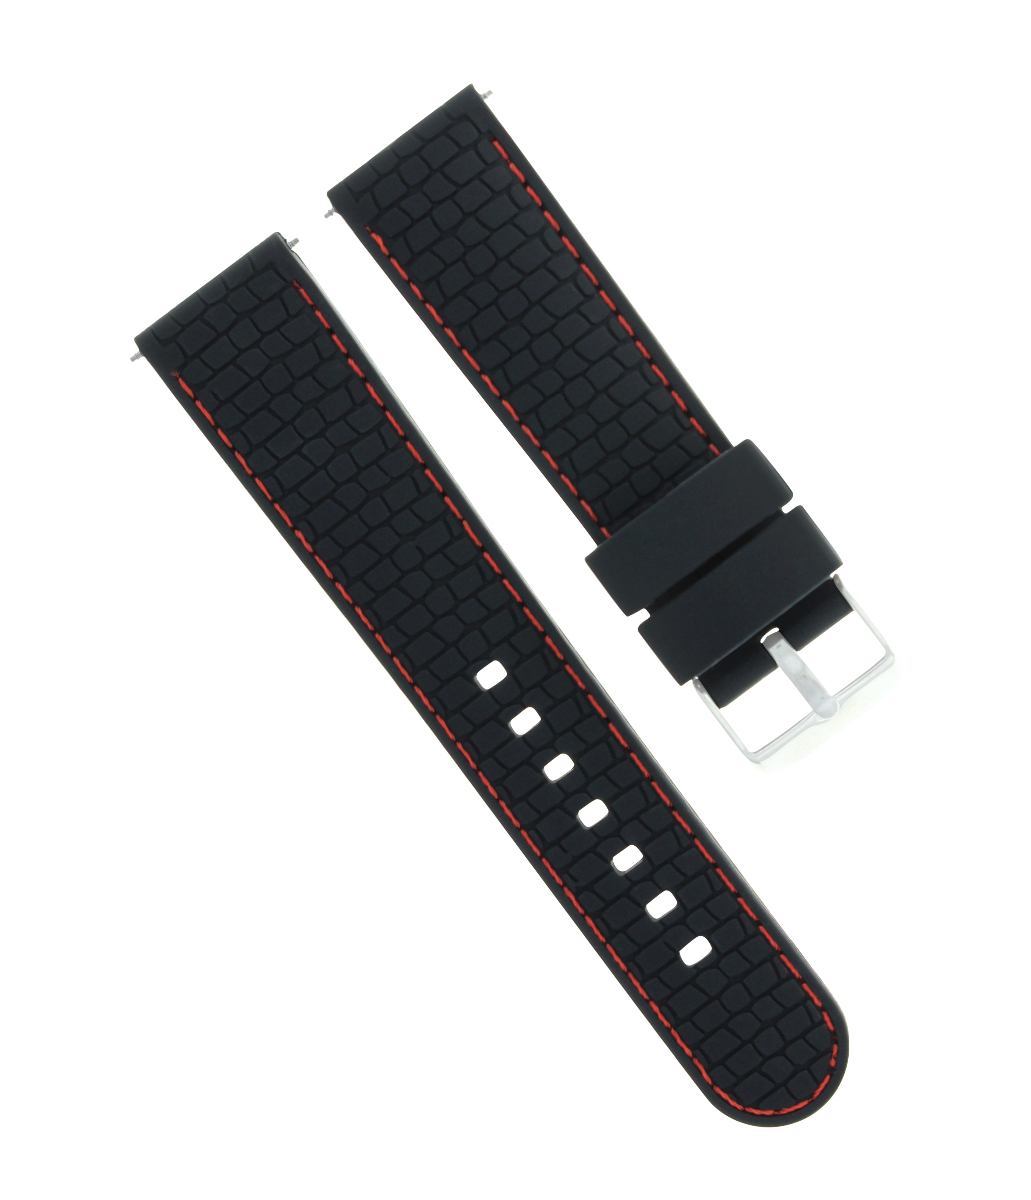 The Of Fossil Watch Bands